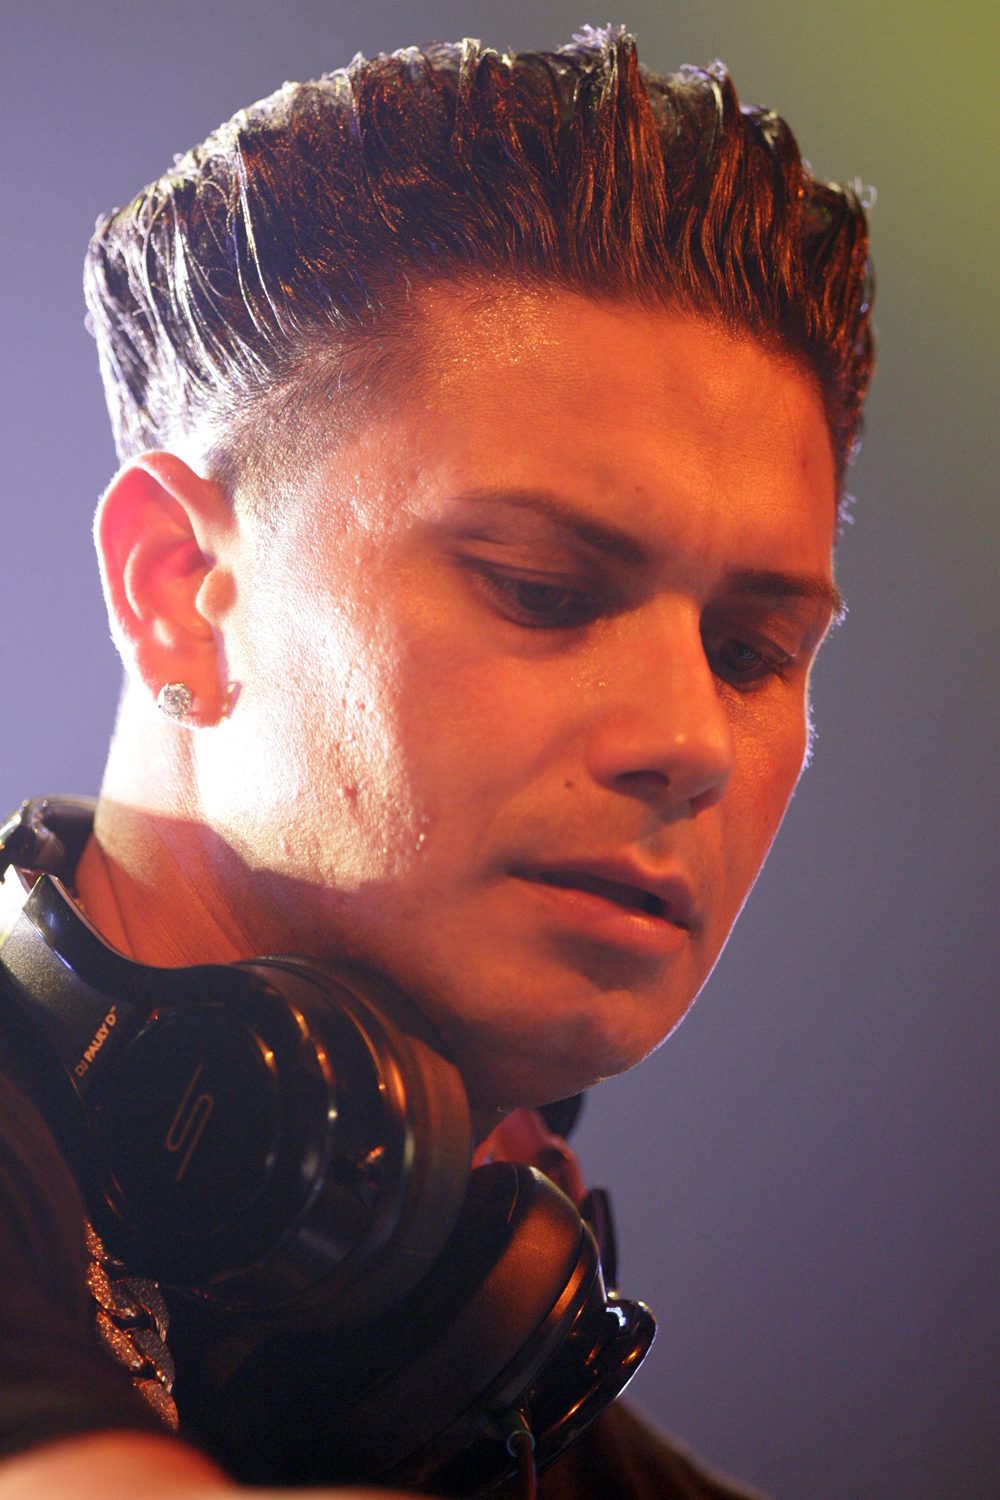 Filedj pauly d 8416257579g wikimedia commons filedj pauly d 8416257579g winobraniefo Images